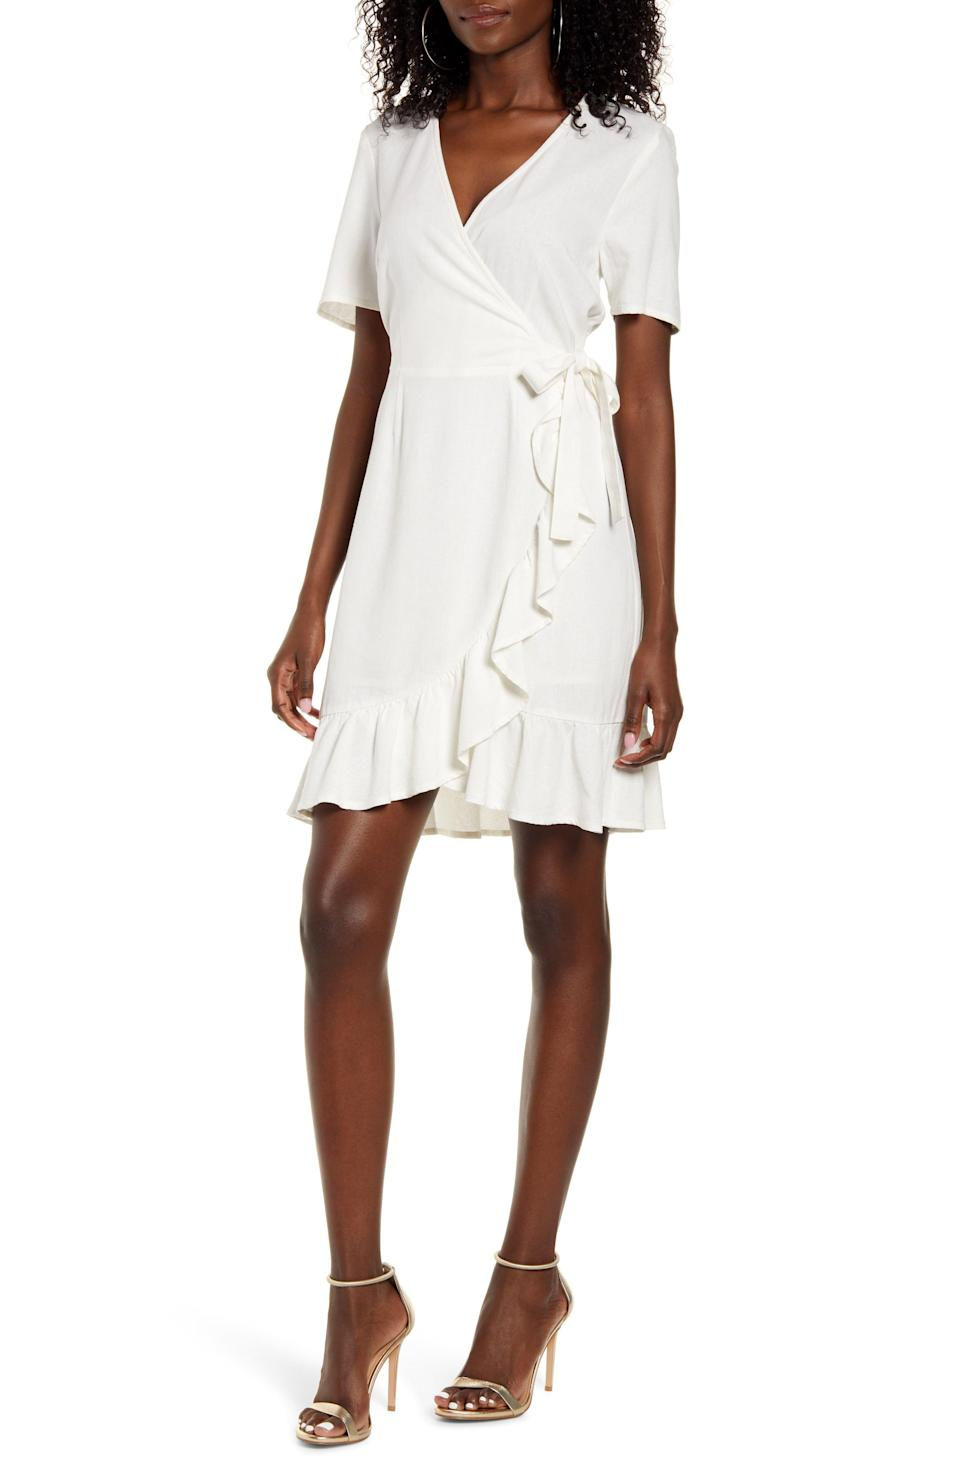 """<p><strong>VERO MODA</strong></p><p>nordstrom.com</p><p><strong>$65.00</strong></p><p><a href=""""https://go.redirectingat.com?id=74968X1596630&url=https%3A%2F%2Fshop.nordstrom.com%2Fs%2Fvero-moda-helen-faux-wrap-minidress%2F5637427&sref=https%3A%2F%2Fwww.goodhousekeeping.com%2Fbeauty%2Ffashion%2Fg32127704%2Fwhat-to-wear-to-a-baby-shower%2F"""" rel=""""nofollow noopener"""" target=""""_blank"""" data-ylk=""""slk:Shop Now"""" class=""""link rapid-noclick-resp"""">Shop Now</a></p><p>While wearing white to a wedding is totally taboo, there are no rules about wearing white to a baby shower. A simple white dress can be both dressed up and dressed down, and will make getting ready for any baby shower a breeze (especially if you have can't decide on whether to wear heels or flats until you are in the parking lot). </p>"""